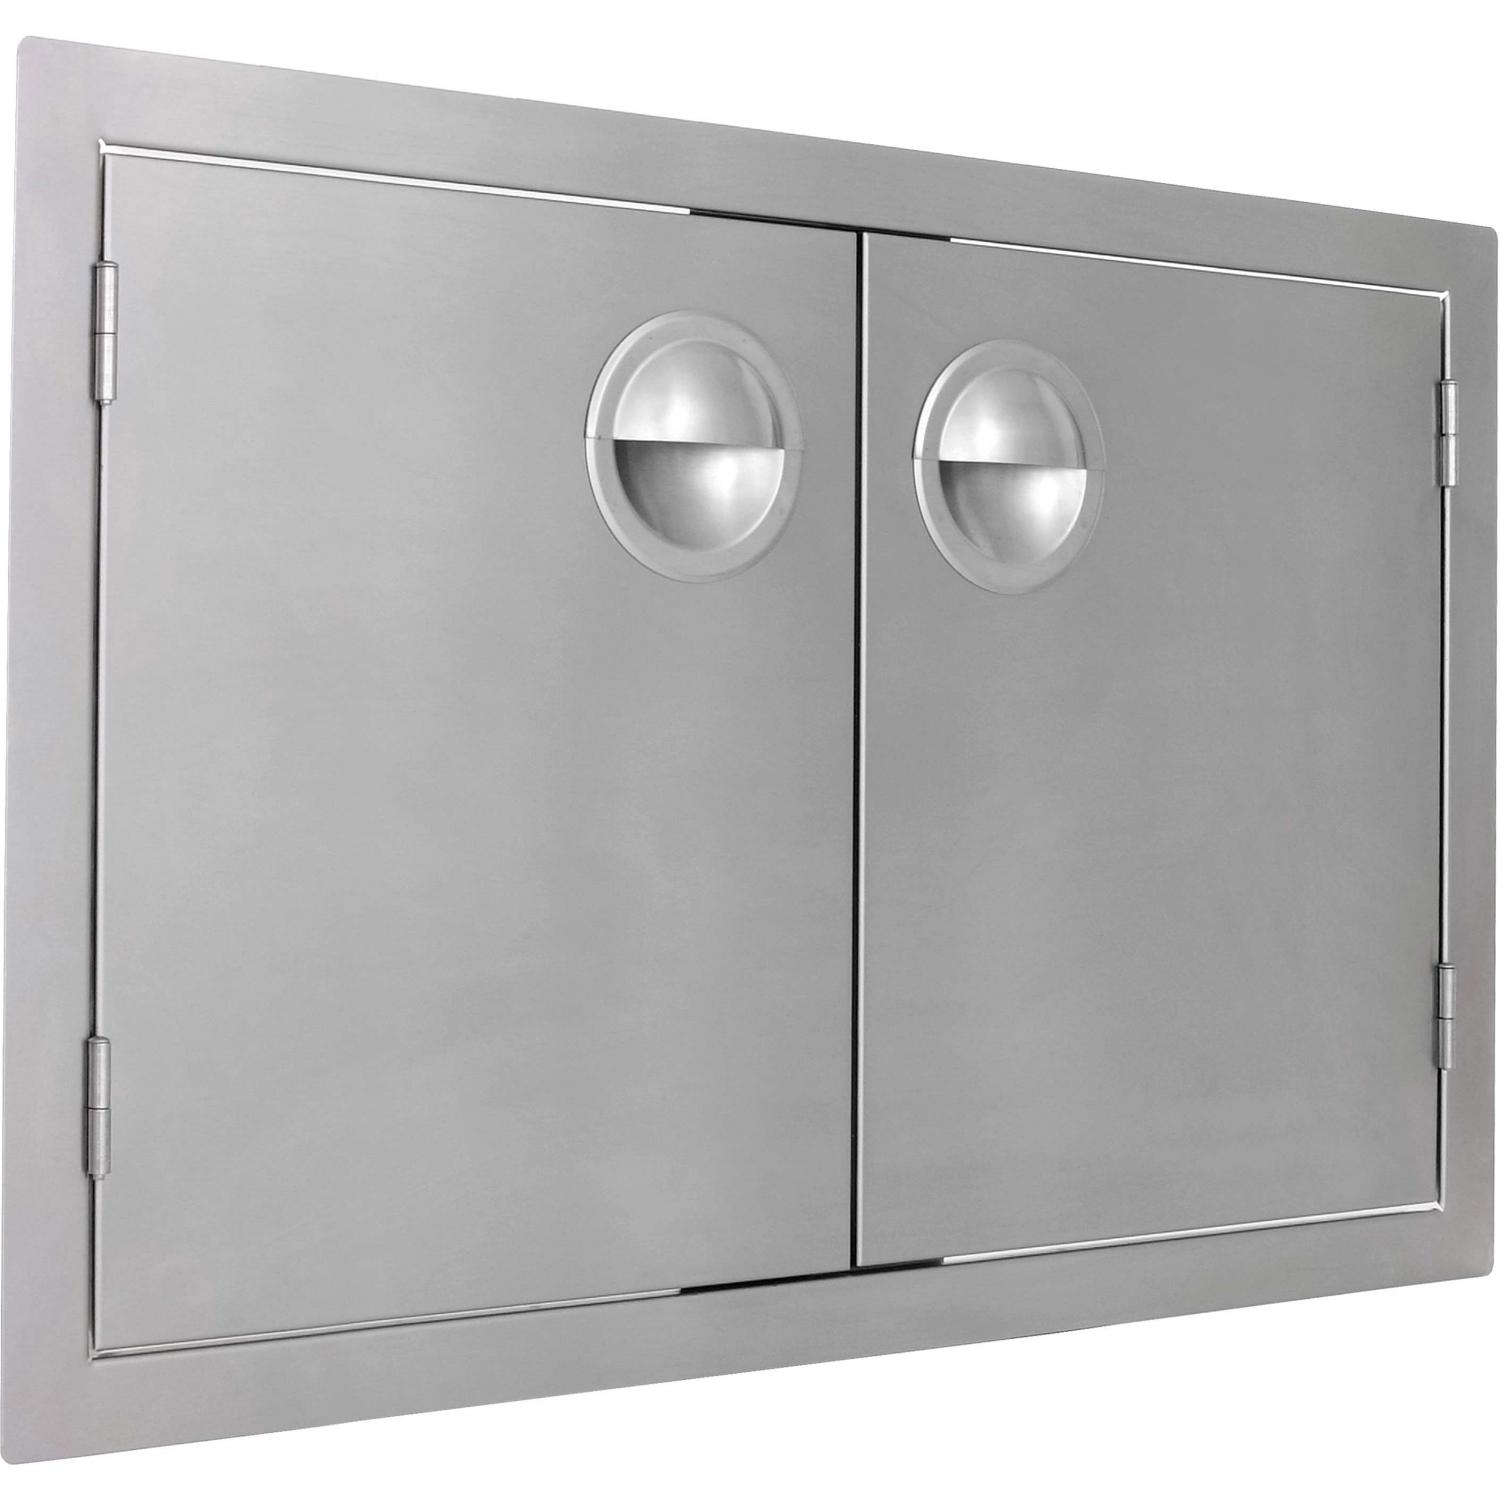 Bbqguys.com Portofino Series 48 Inch Stainless Steel Double Access Door